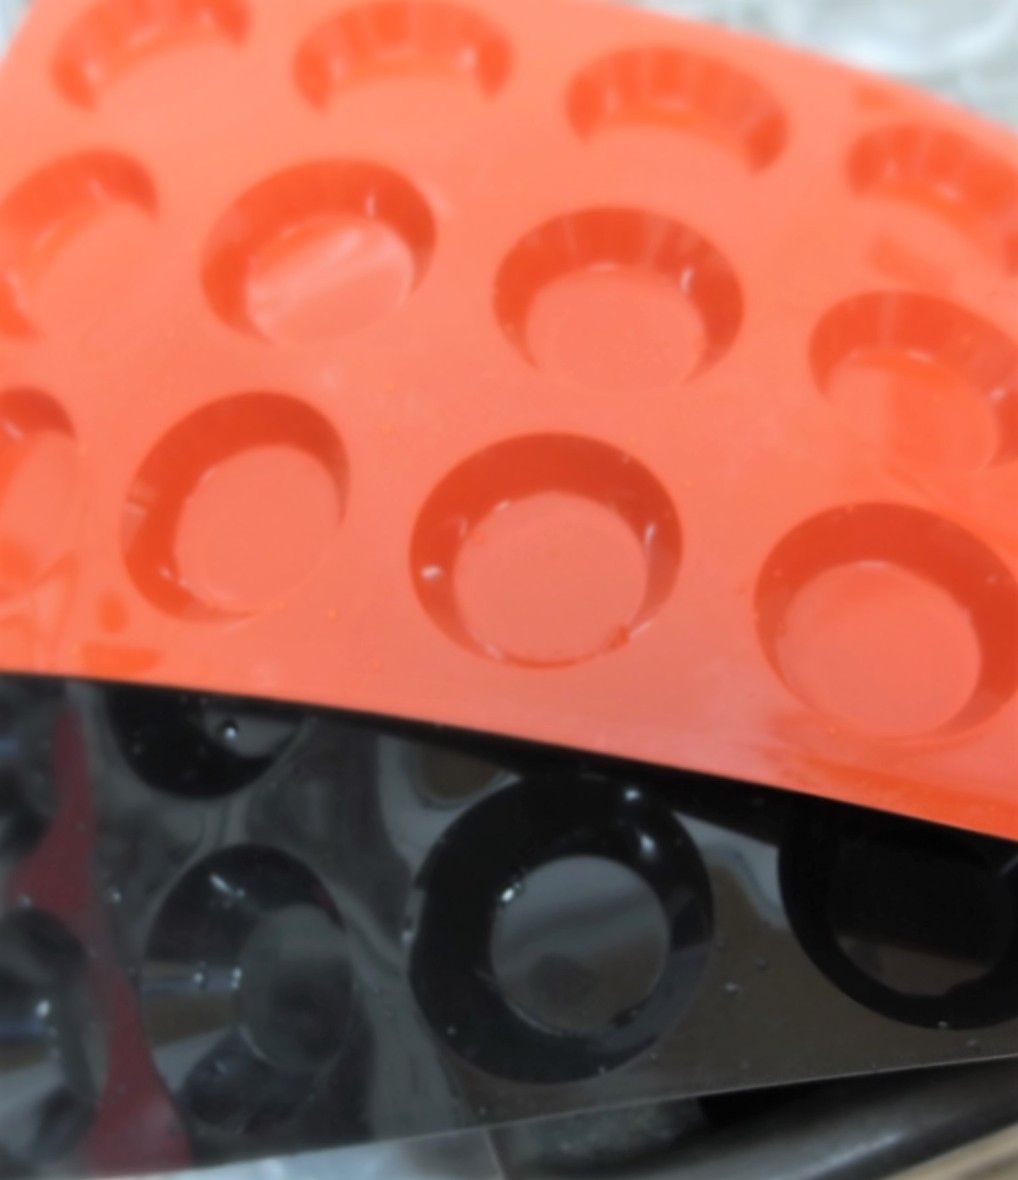 raspberry layer moulds